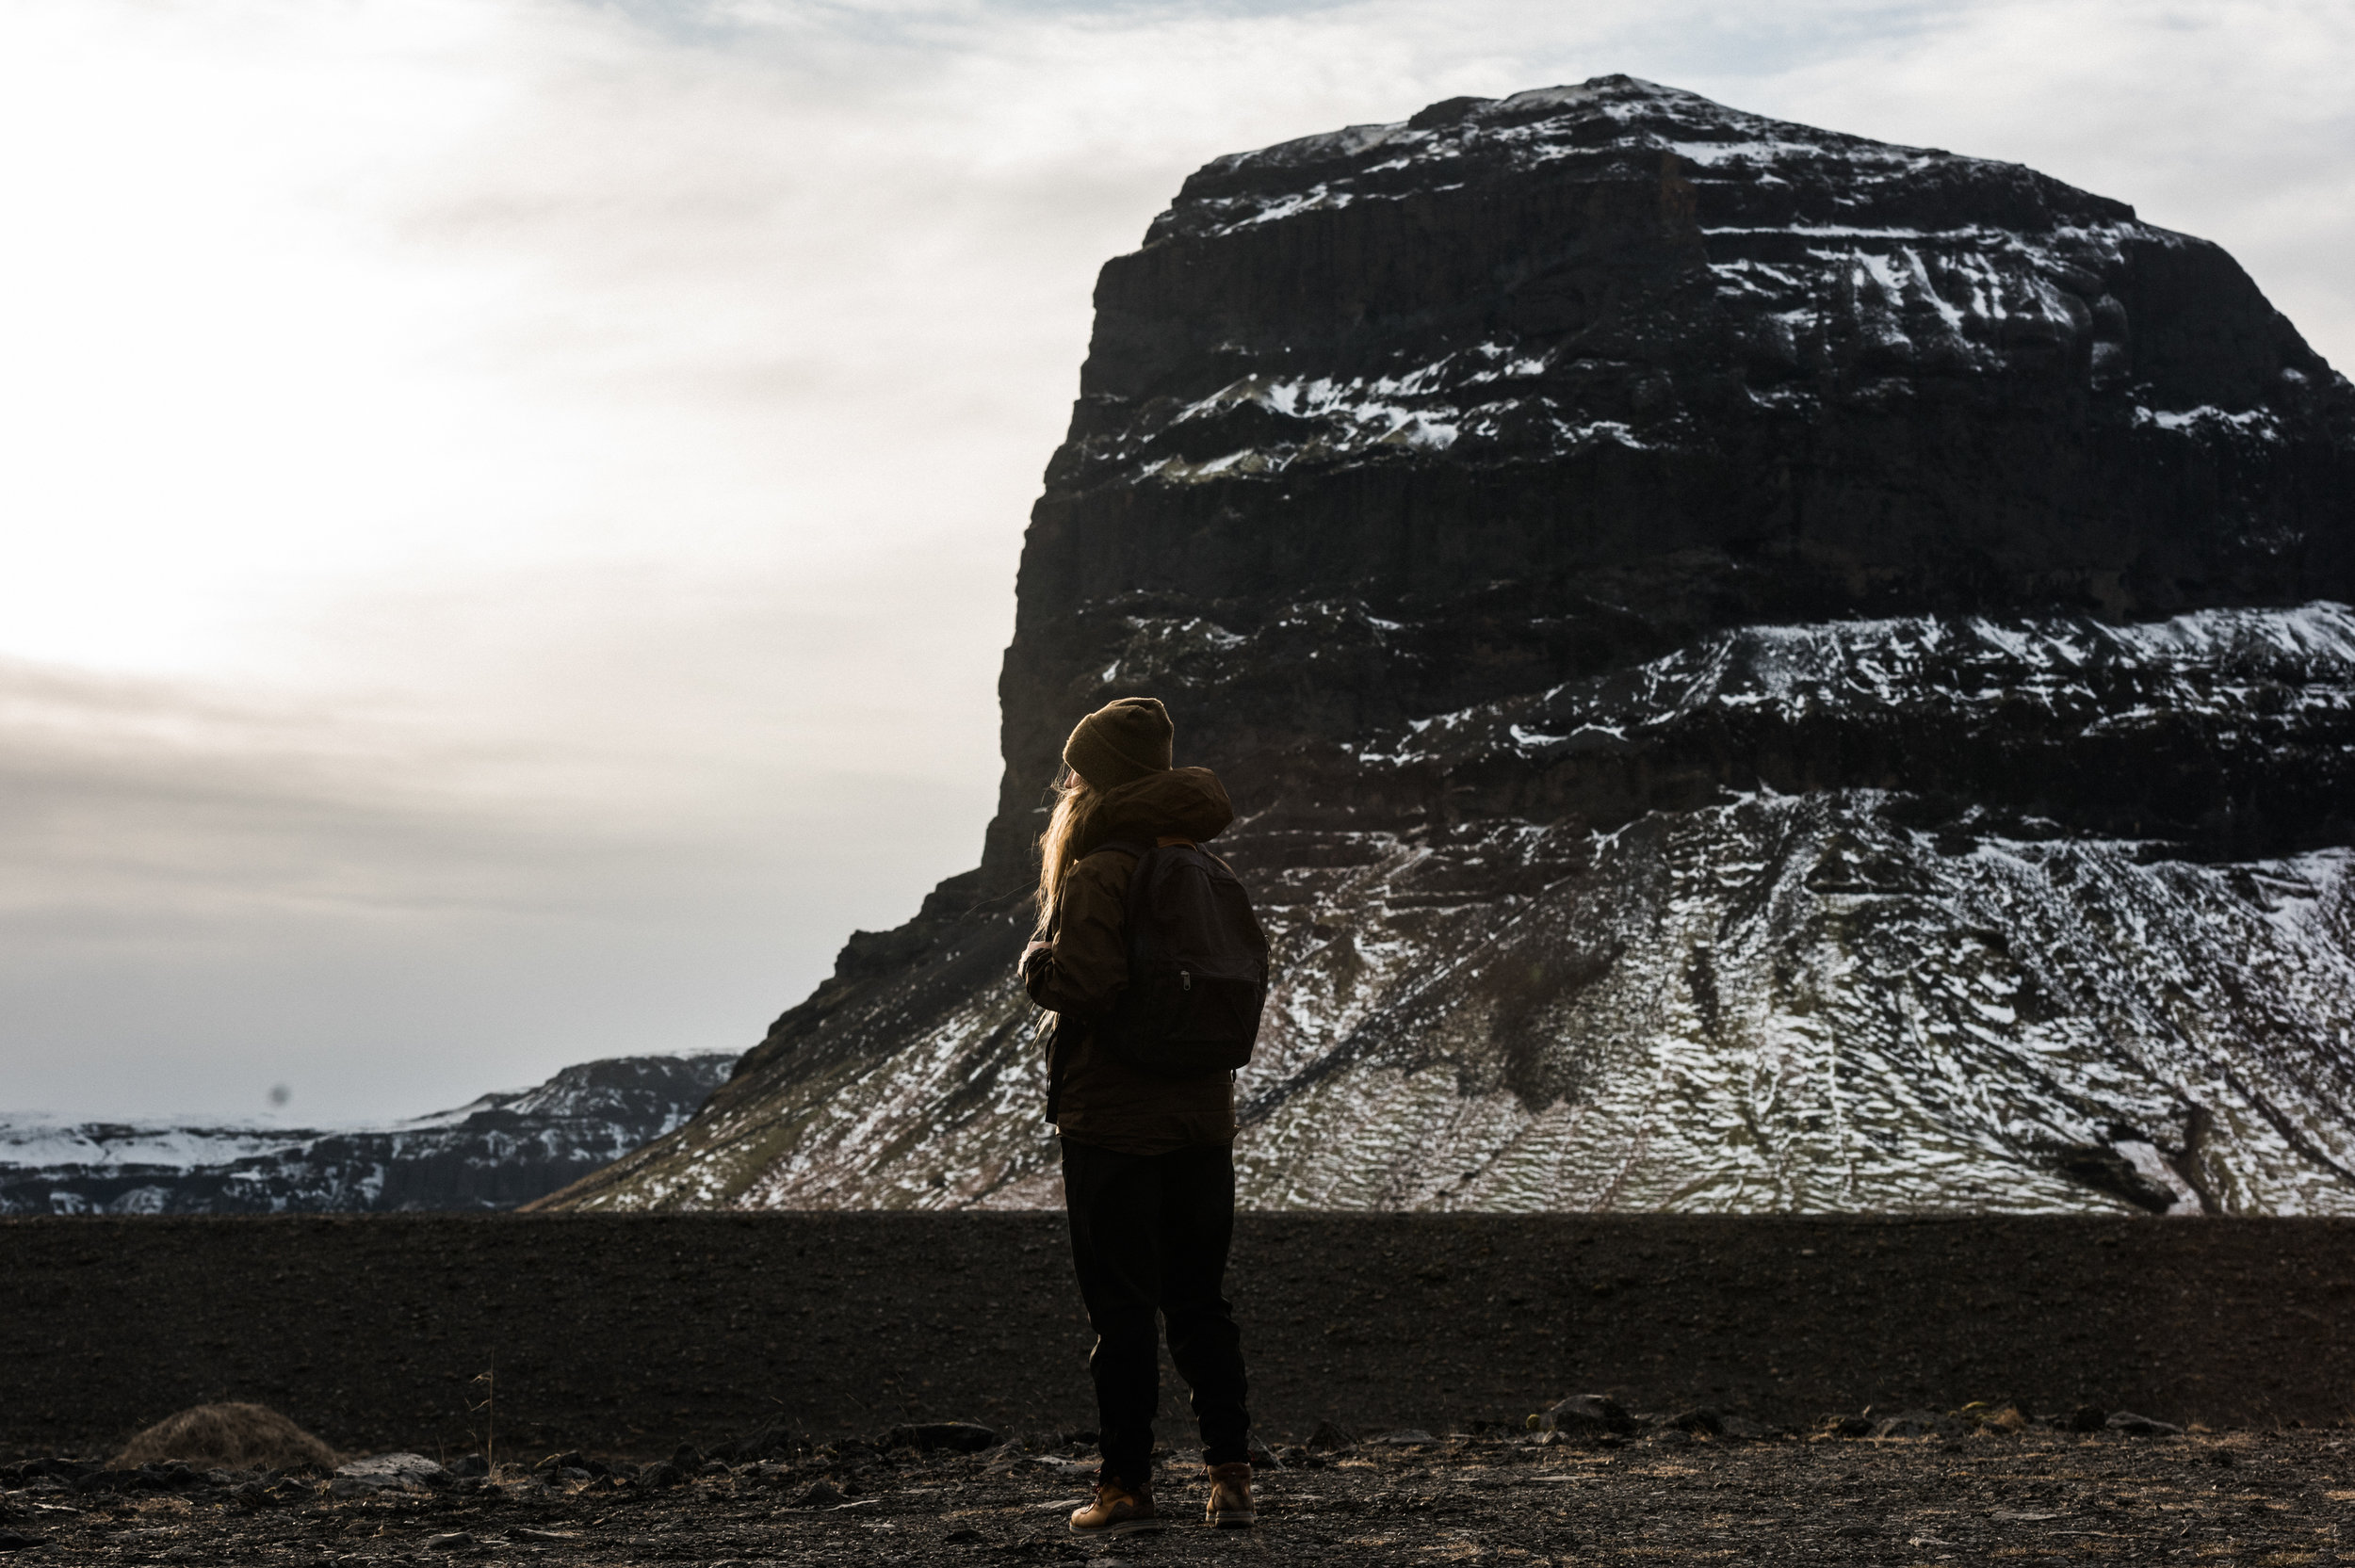 ICELAND_WOMAN_PHOTOGRAPHER_TARASHUPE_OUTDOOR_PHOTOGRAPHY_127.jpg